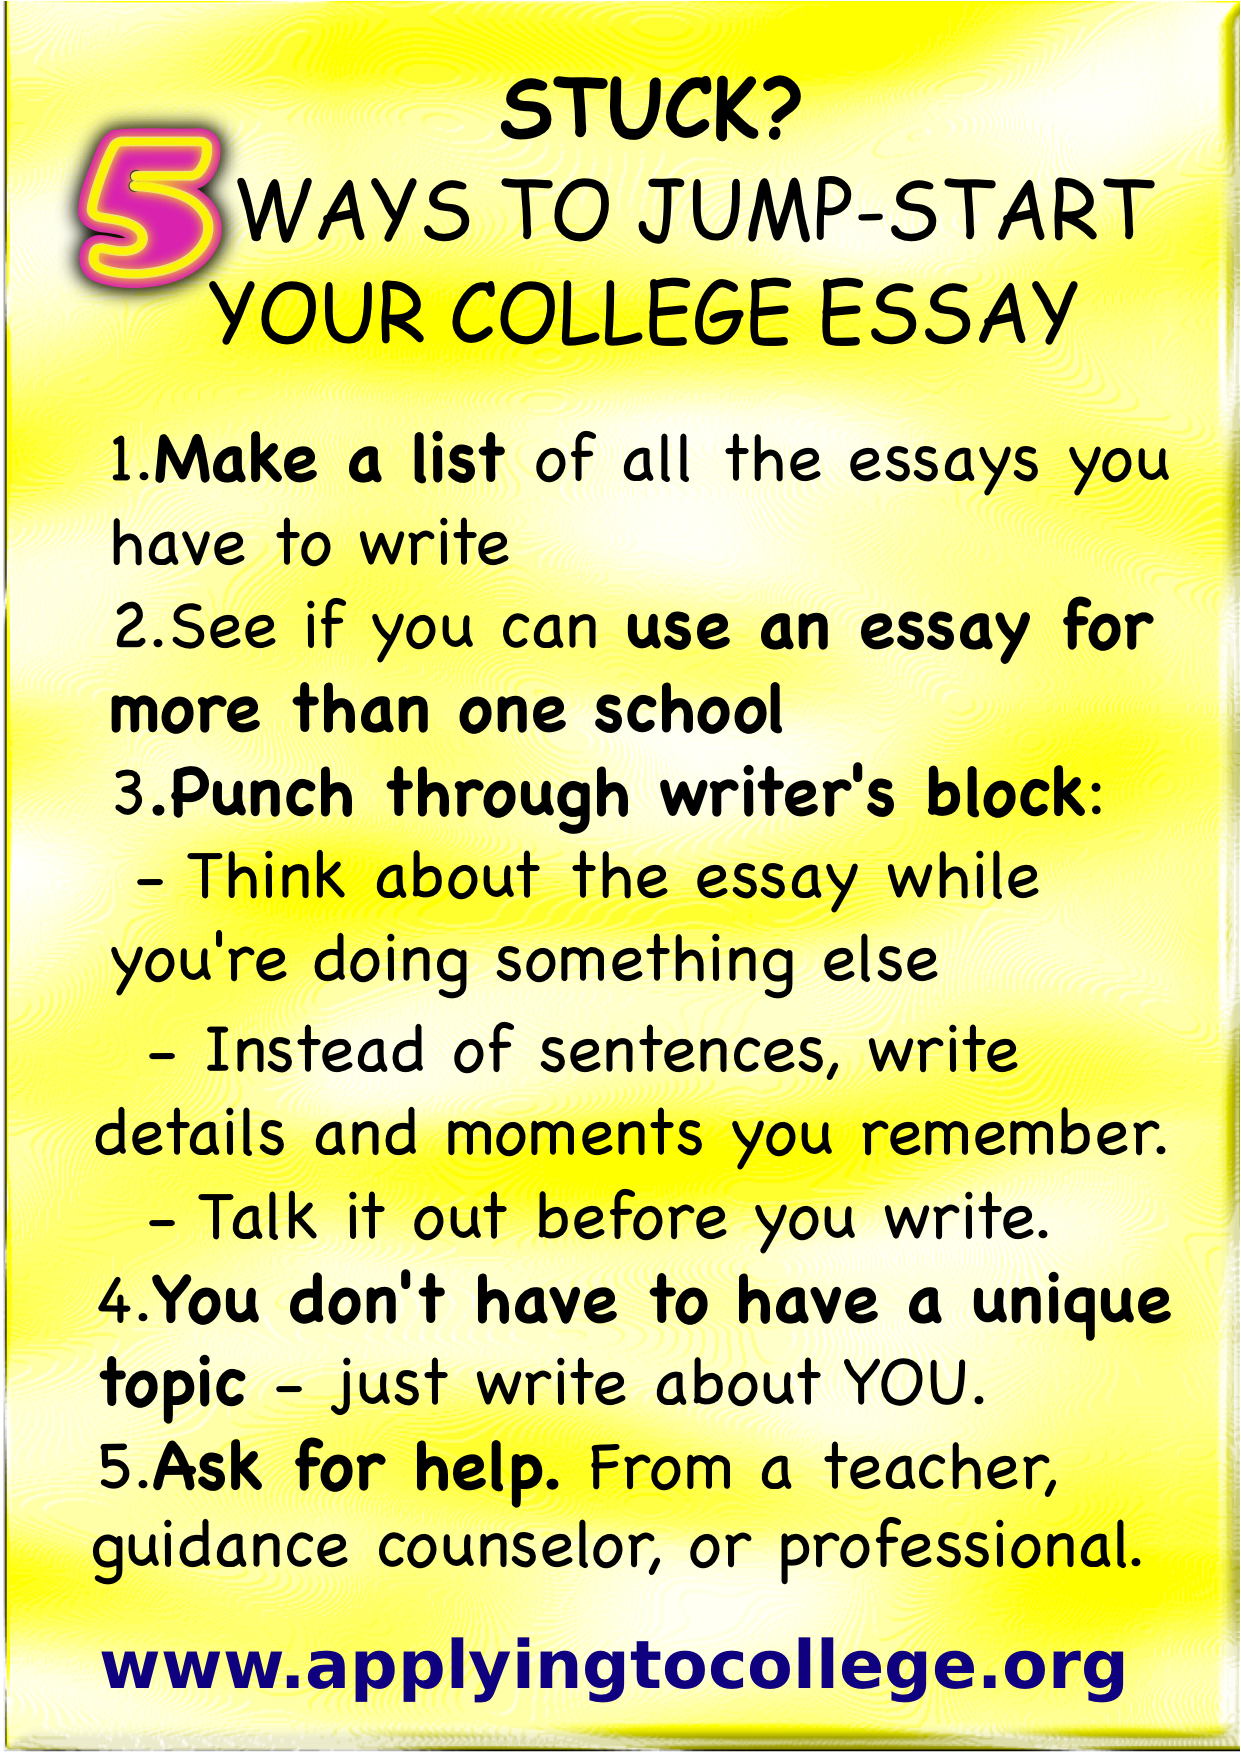 Tips for a good college essay